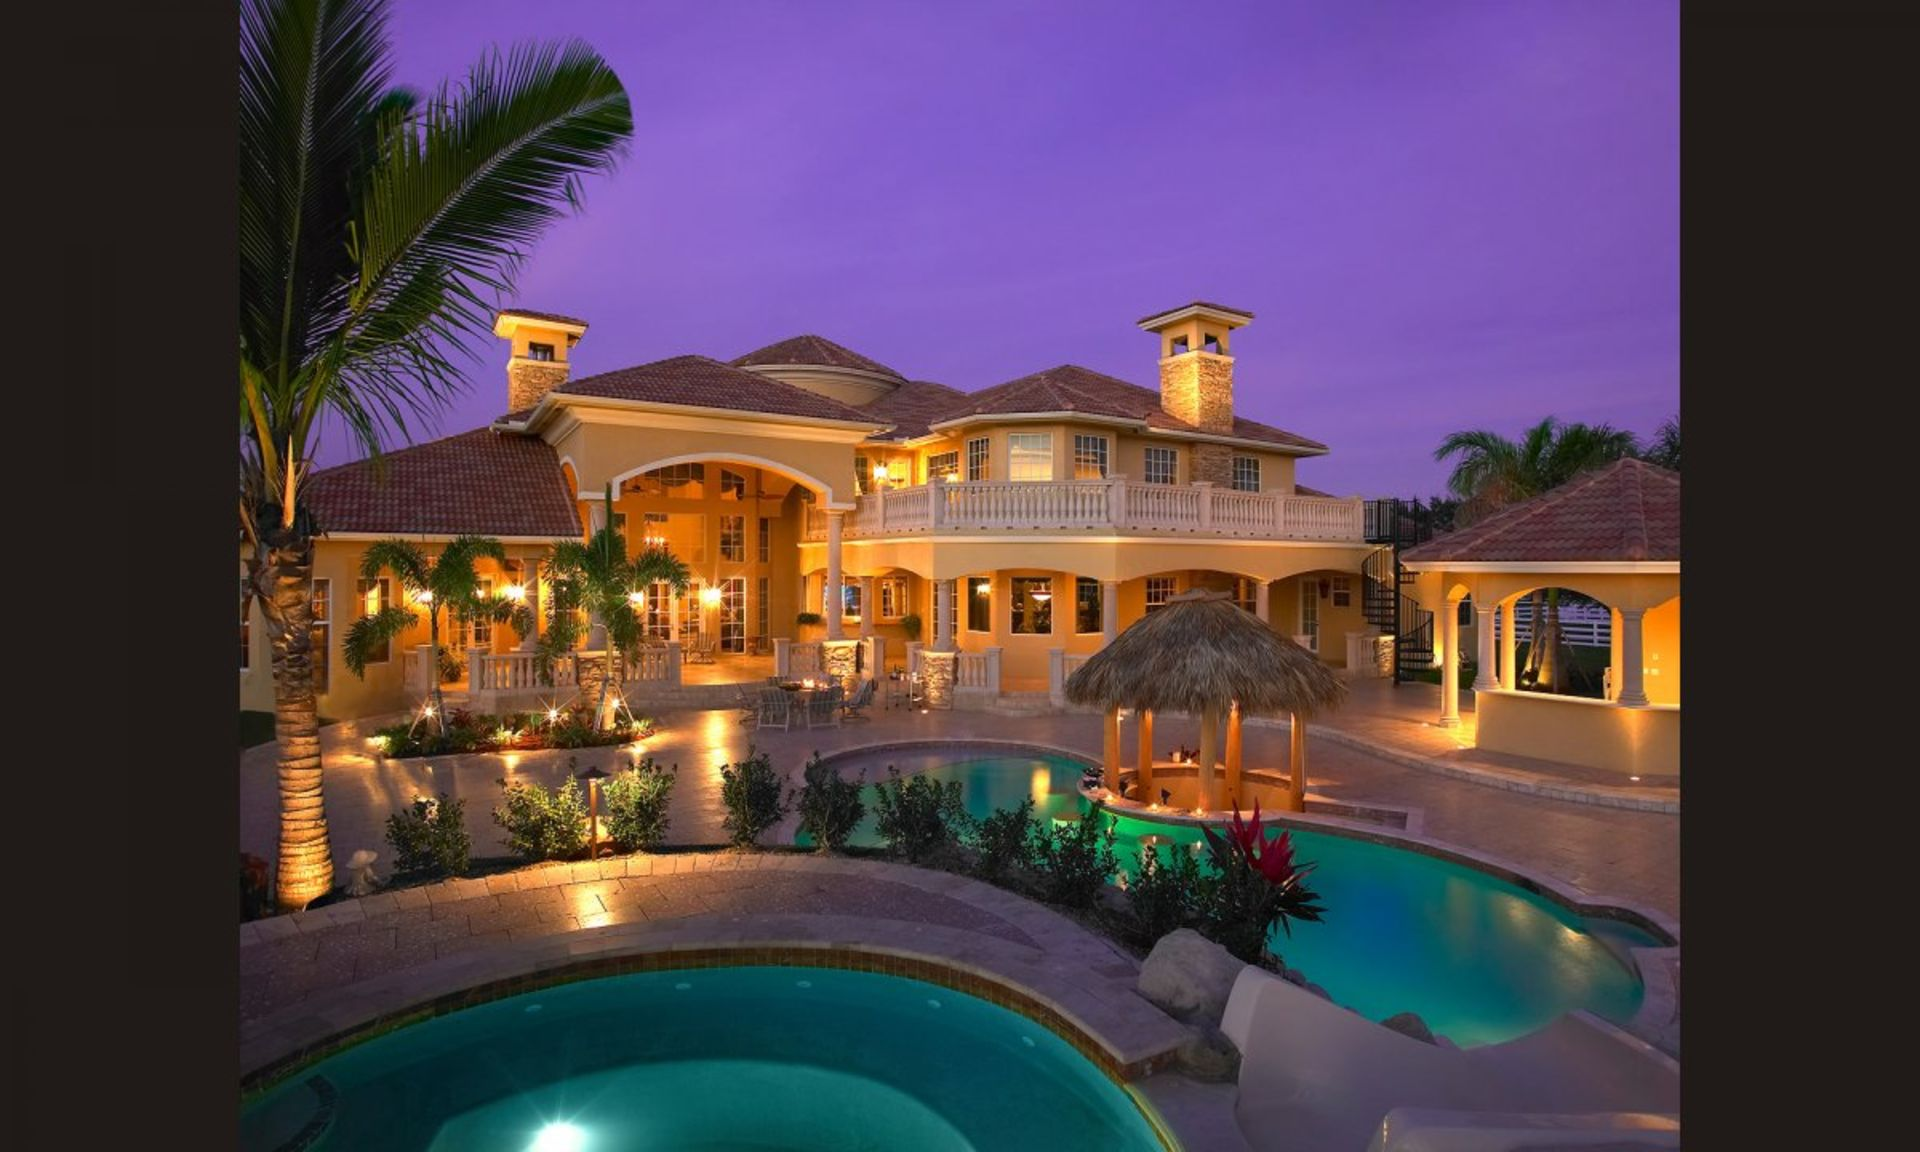 ​South Florida Real Estate Market